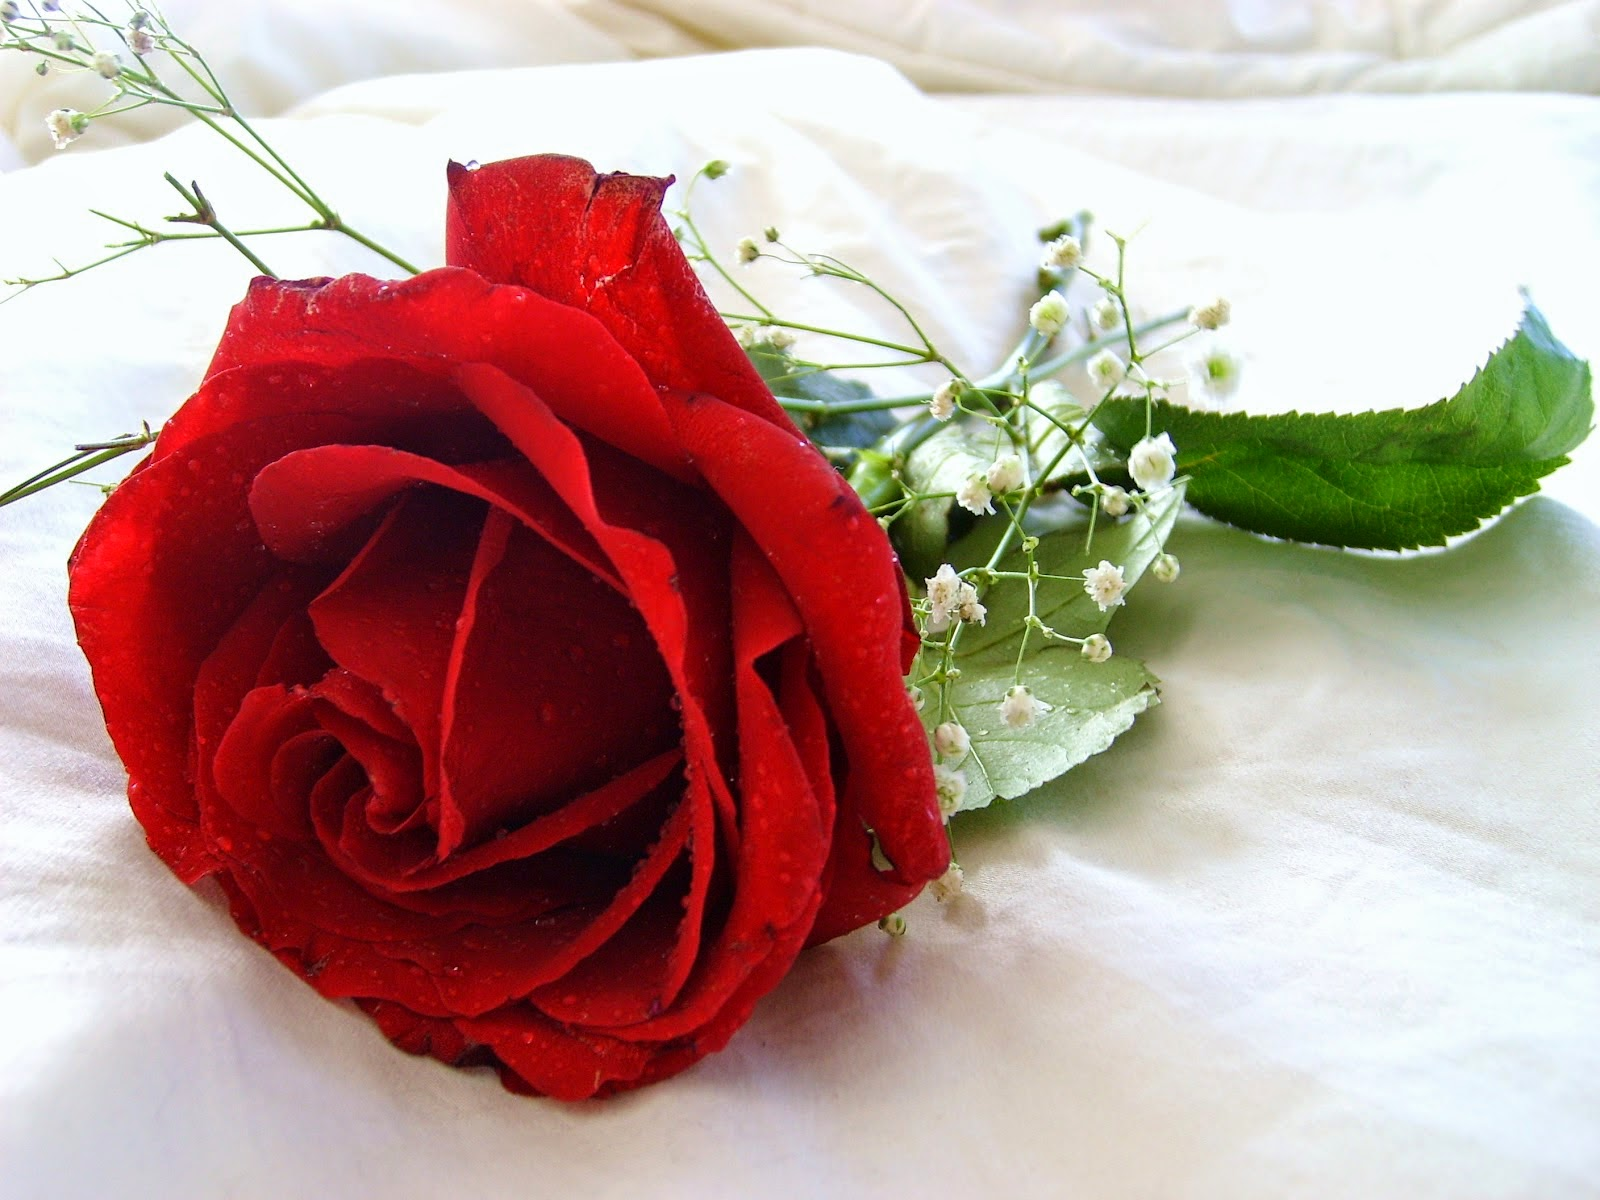 Beautiful flowers hd poze rase de pisici apartament si - Red rose flower hd images ...